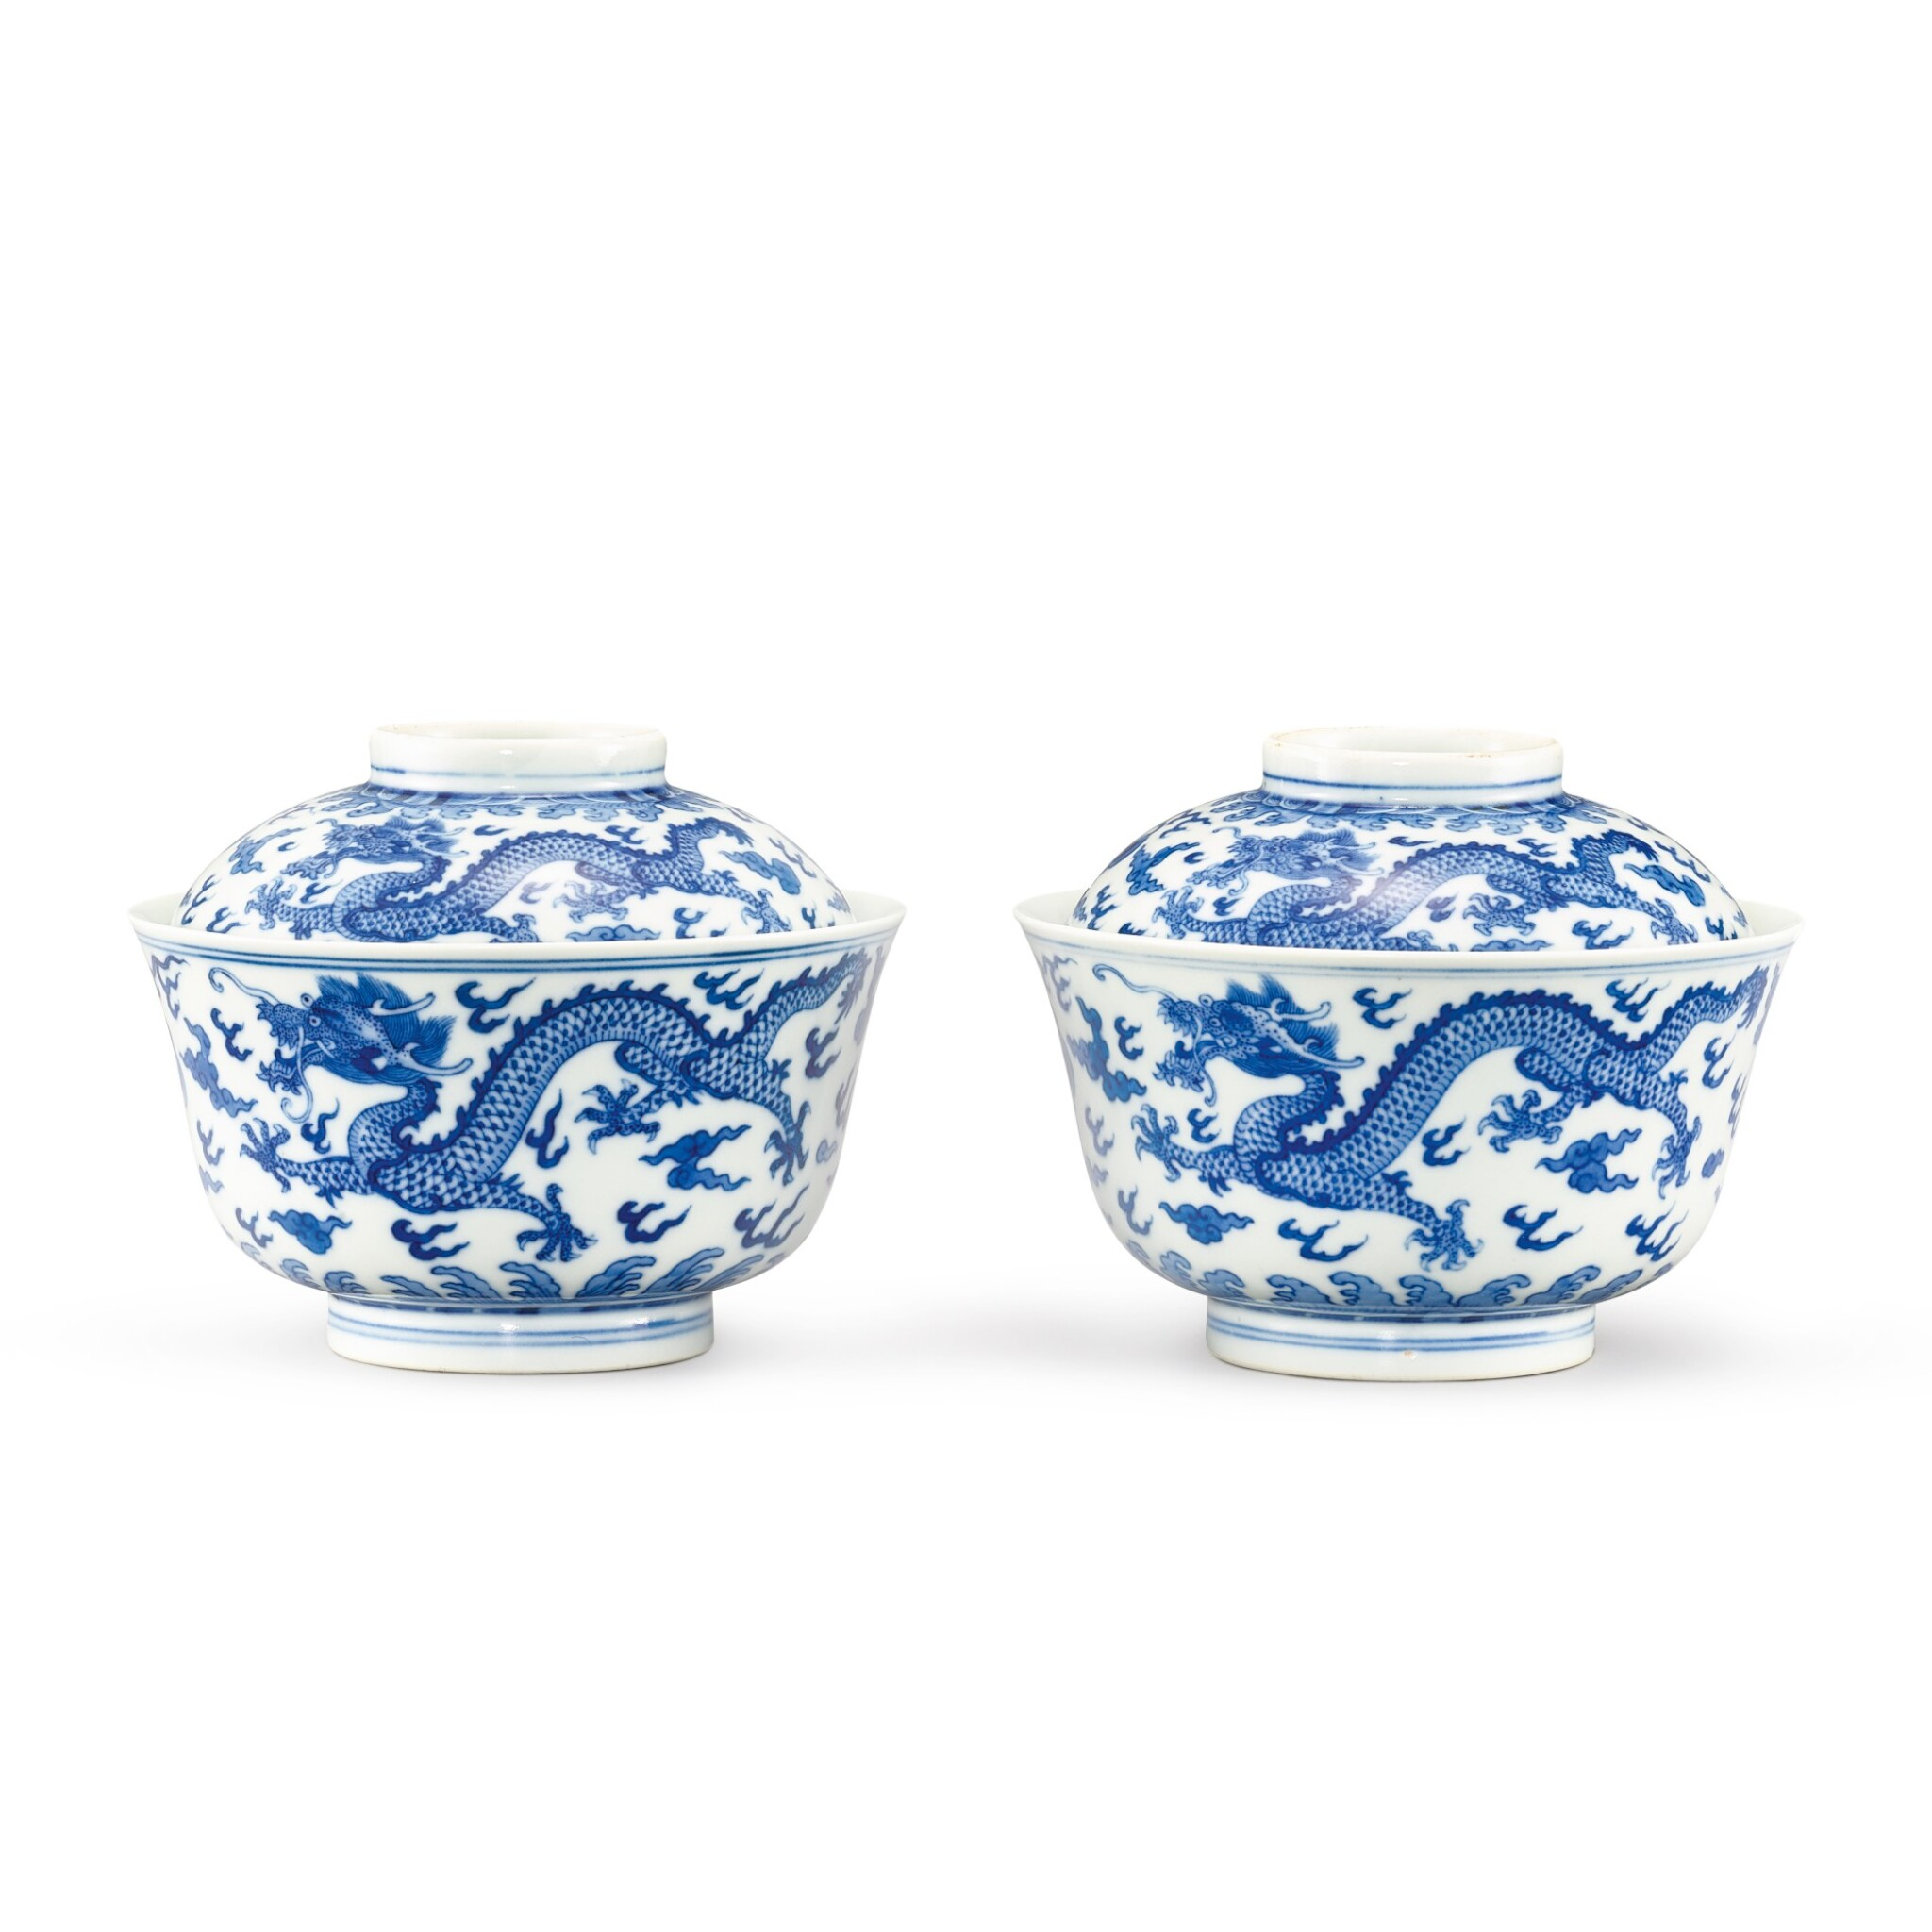 View full screen - View 1 of Lot 109. A SUPERB PAIR OF BLUE AND WHITE 'DRAGON' BOWLS AND COVERS SEAL MARKS AND PERIOD OF DAOGUANG   清道光 青花雲龍紋蓋鐘一對 《大清道光年製》款.